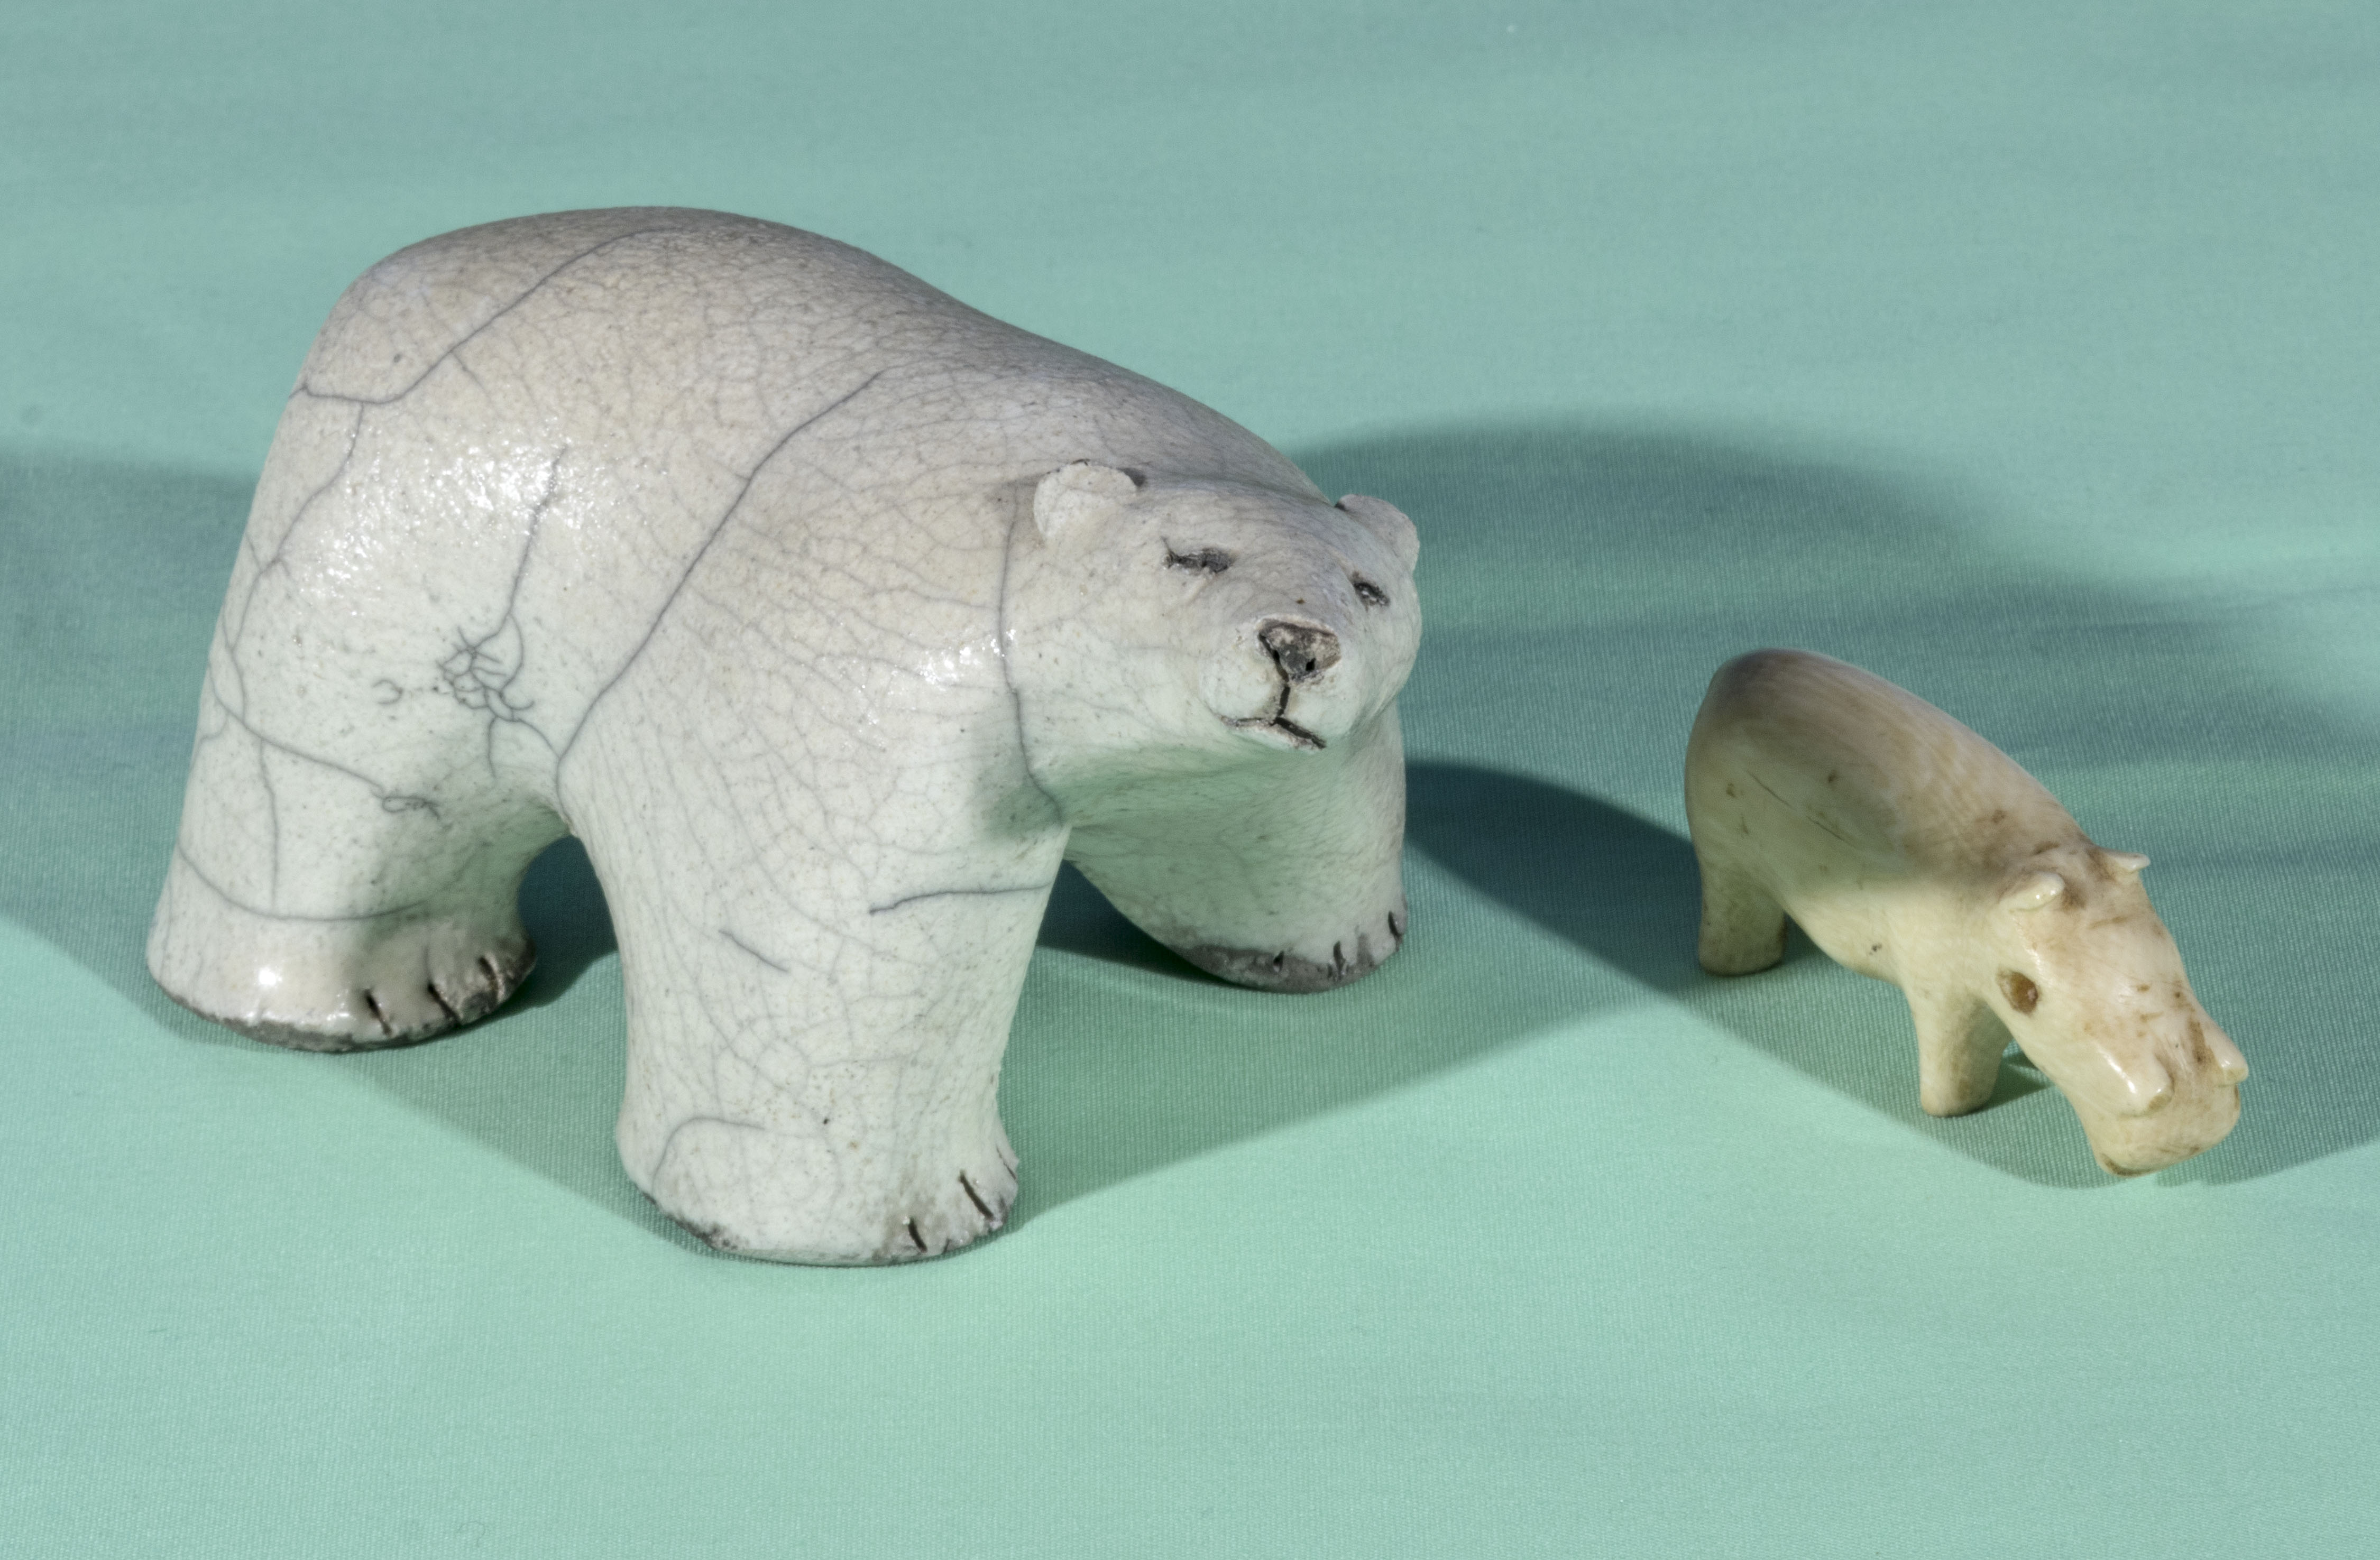 An Inuit polar bear and one other carving